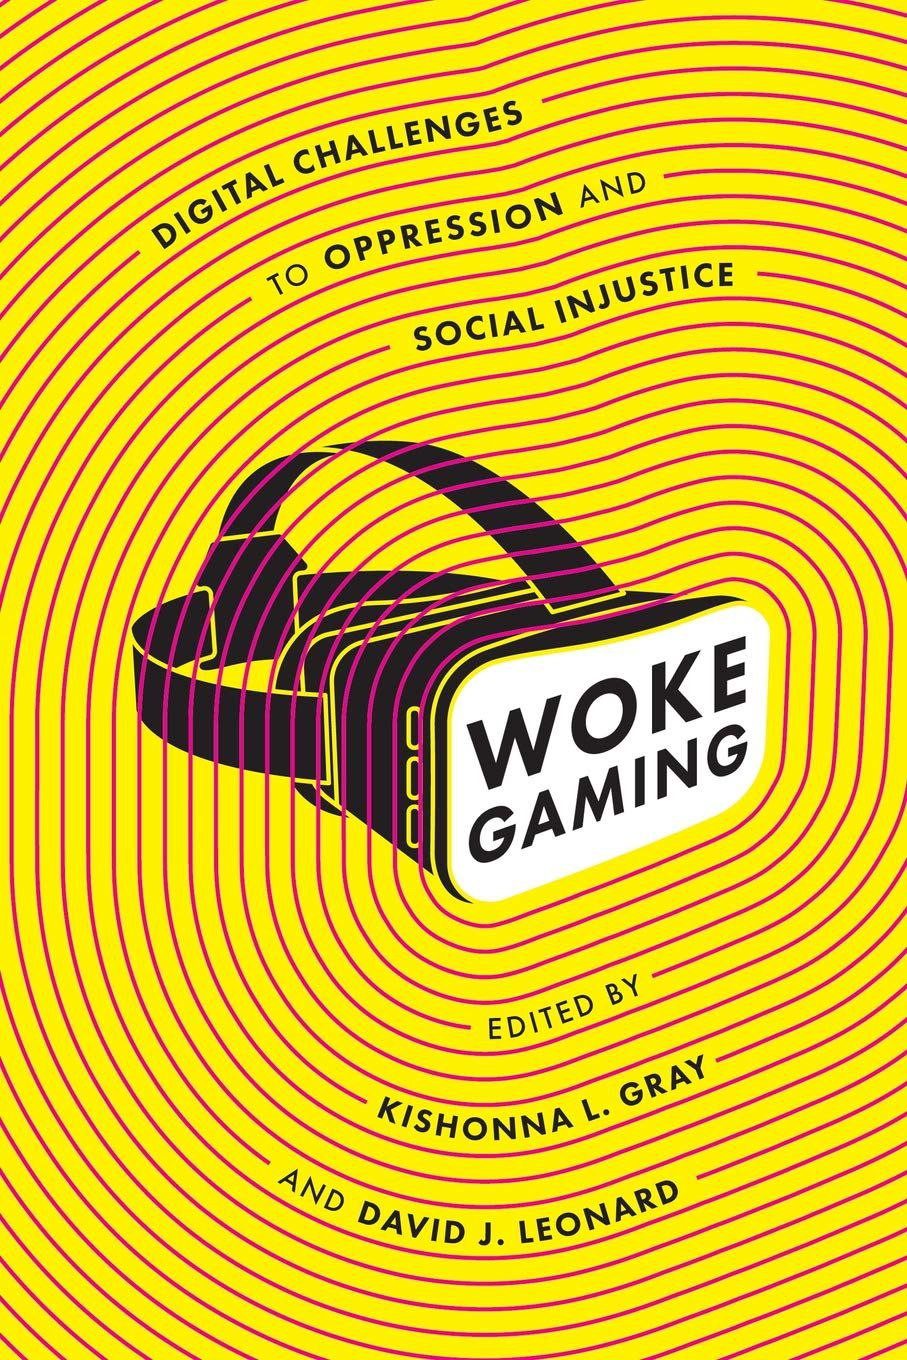 cover of Woke Gaming: Digital Challenges to Oppression and Social Injustice, by Dr. Kishonna L. Gray and Dr. David J. Leonard